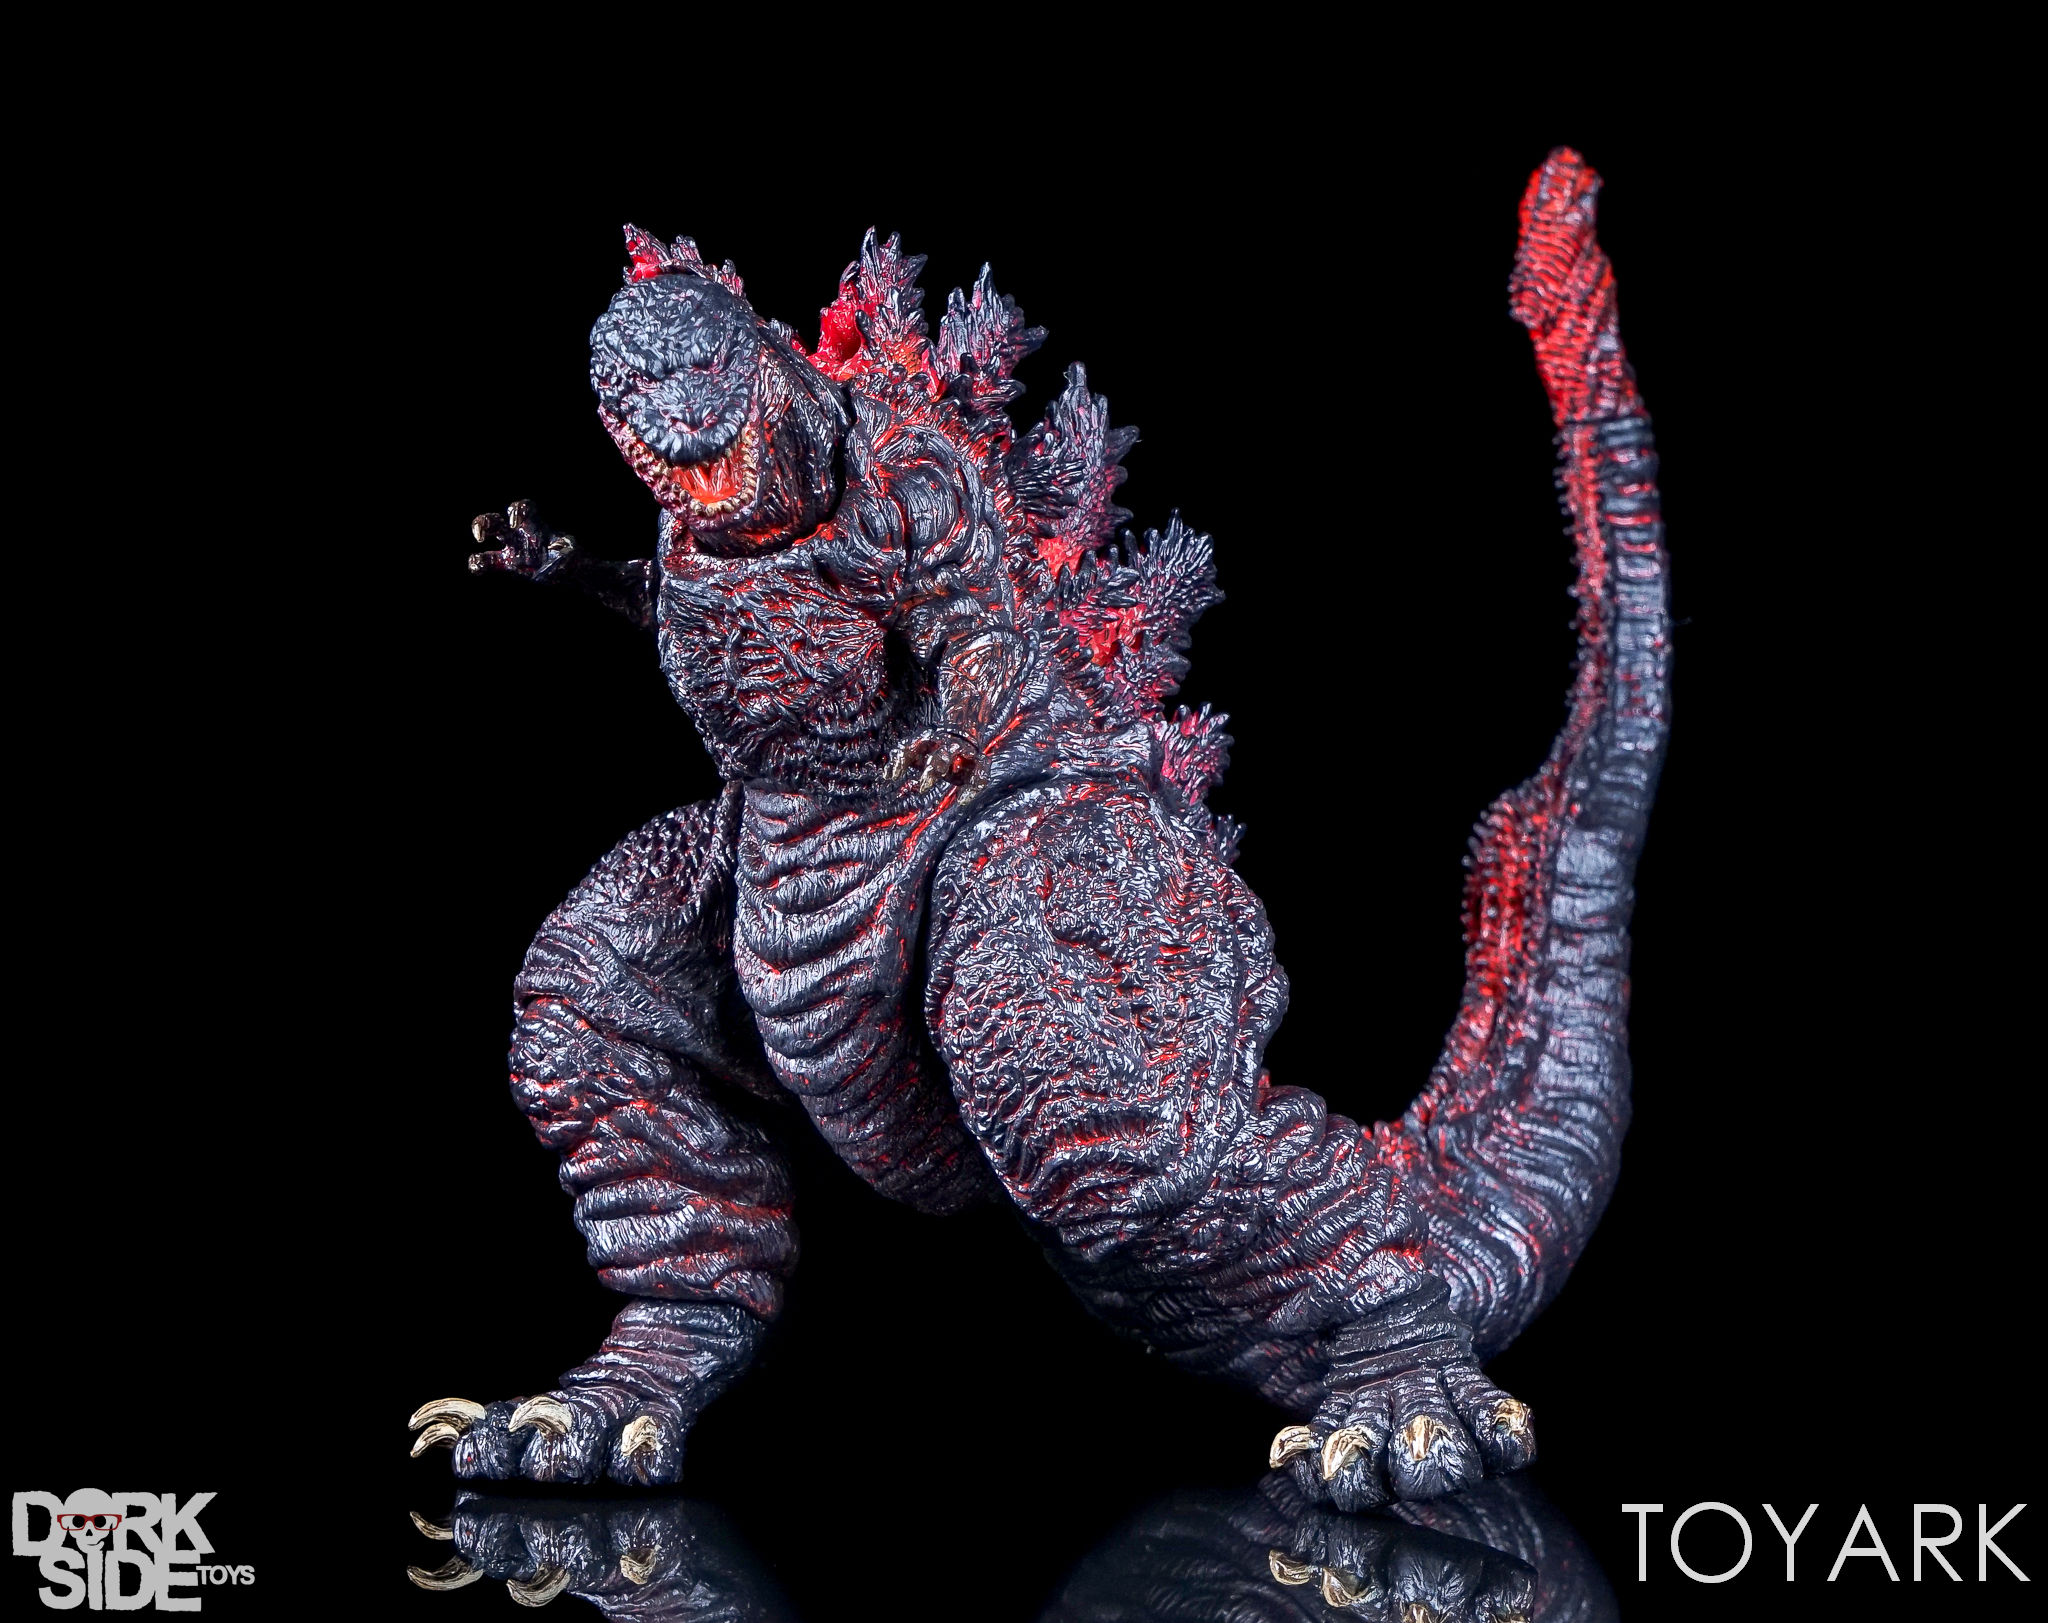 http://news.toyark.com/wp-content/uploads/sites/4/2017/05/Shin-Godzilla-Figure-NECA-016.jpg